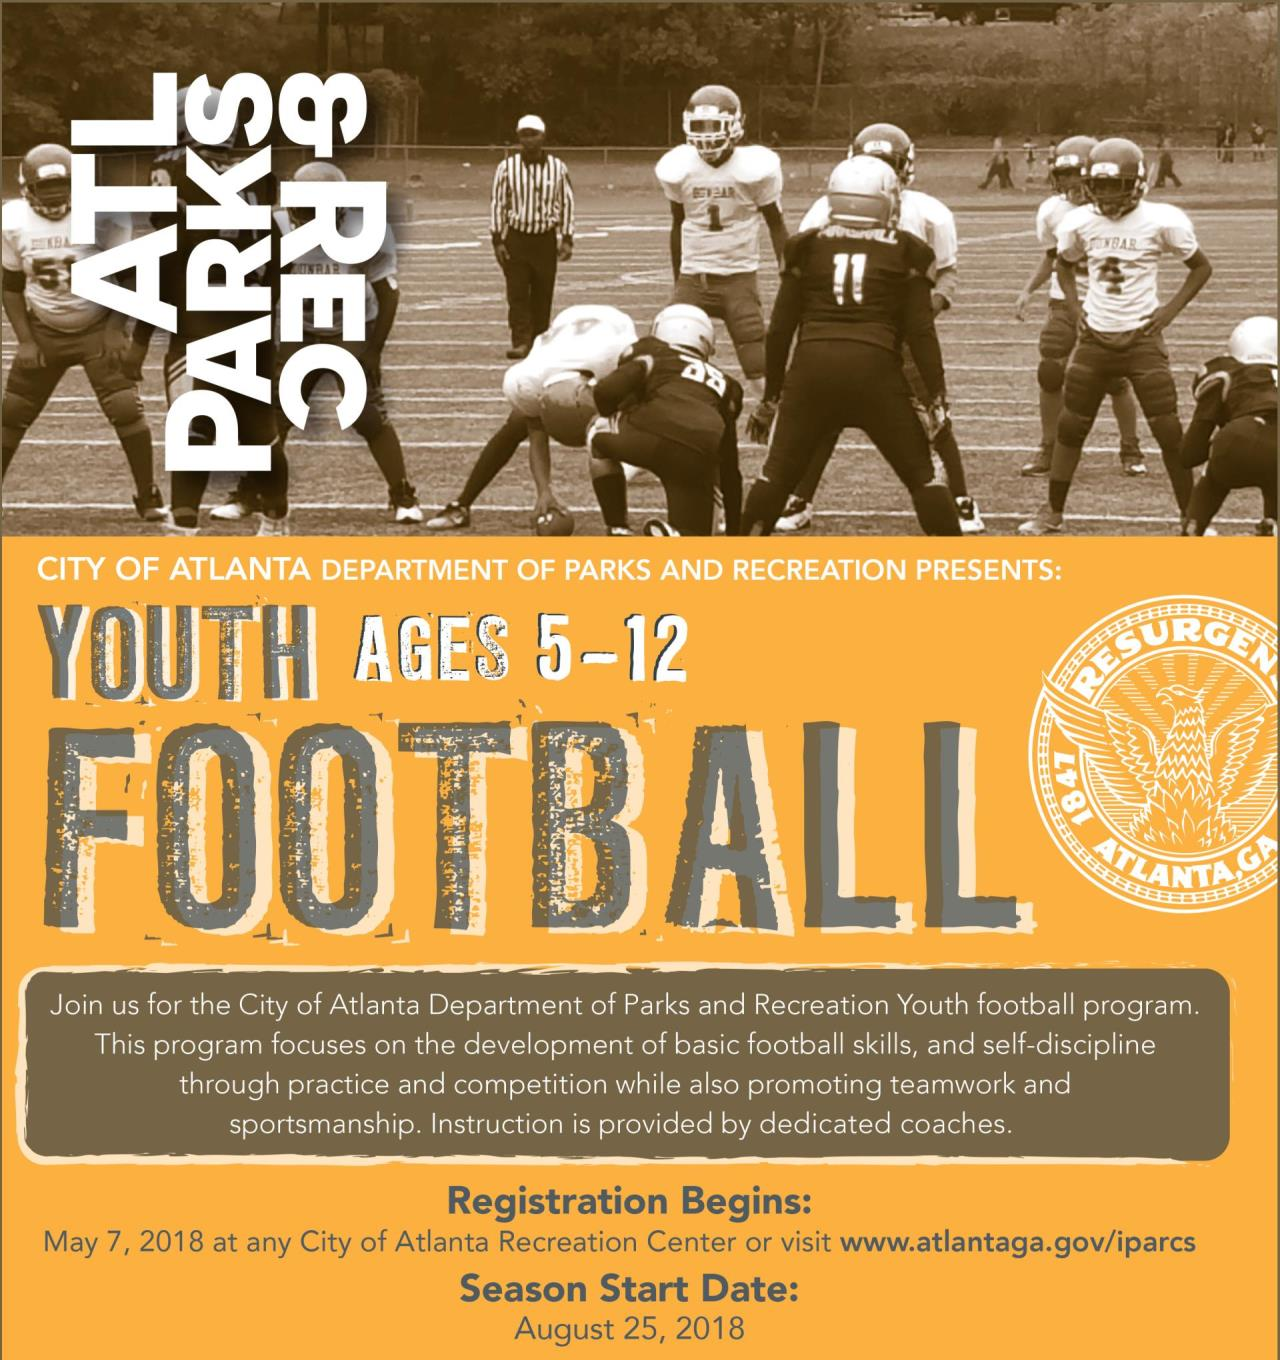 2018 Youth Football Flyer rev e8382375b